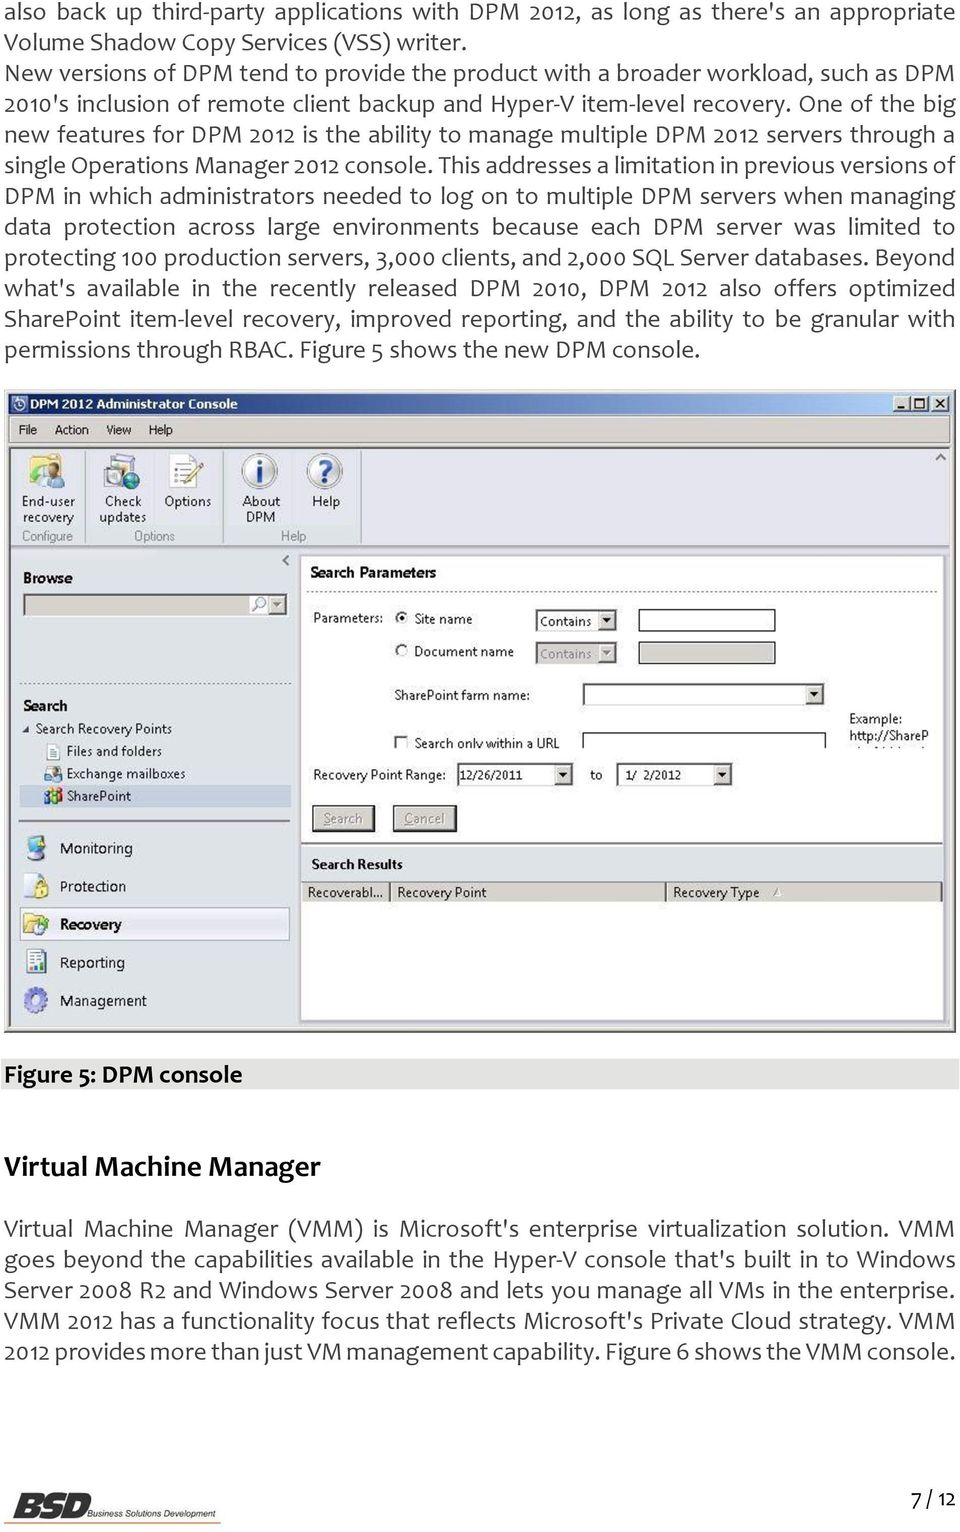 One of the big new features for DPM 2012 is the ability to manage multiple DPM 2012 servers through a single Operations Manager 2012 console.